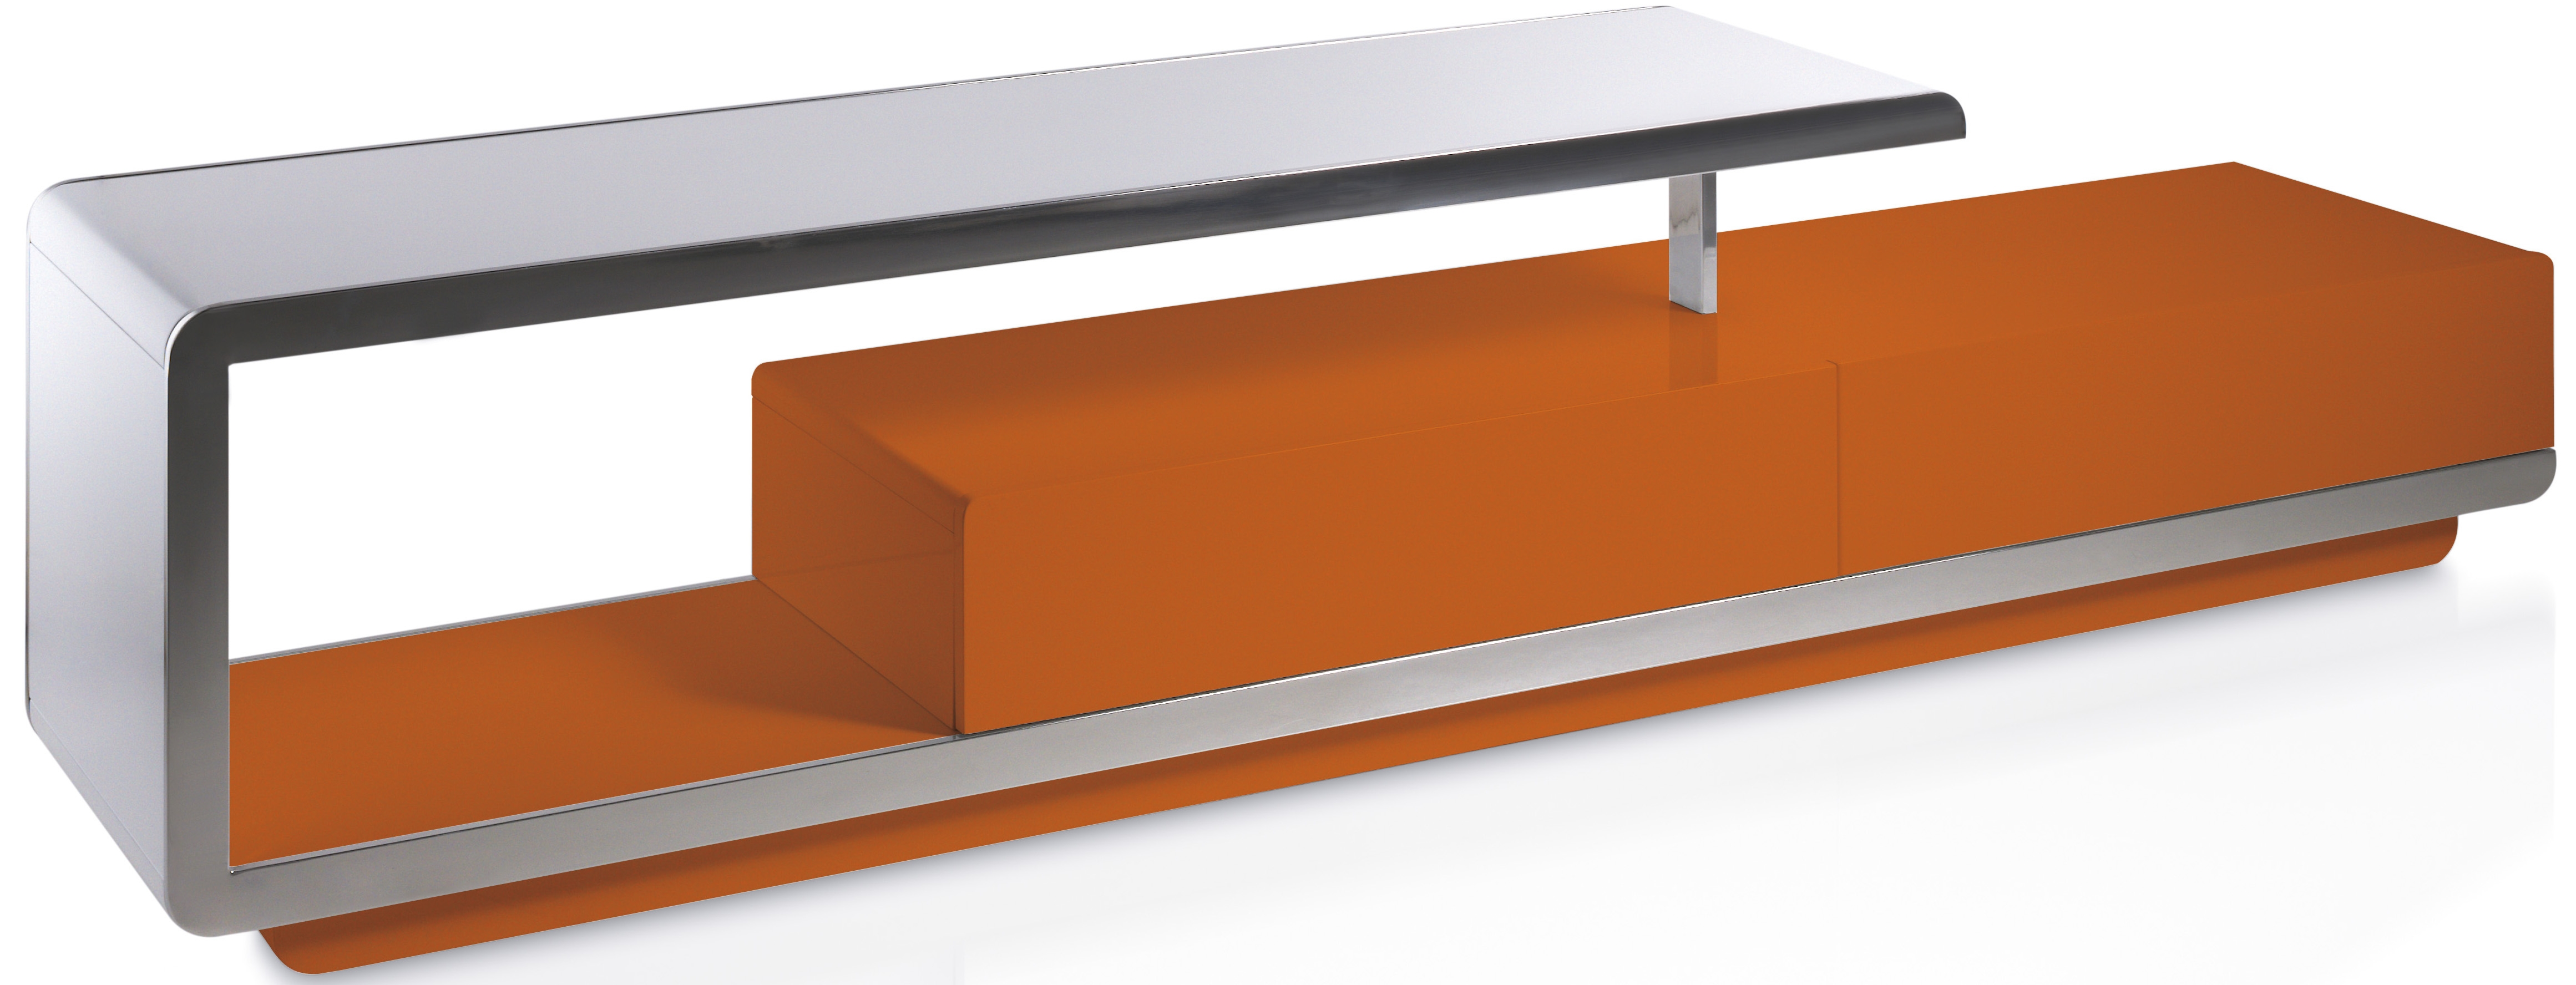 Meuble Tv Fly Orange Design D Int Rieur Et Inspiration De Meubles # Spectral Meuble Tv